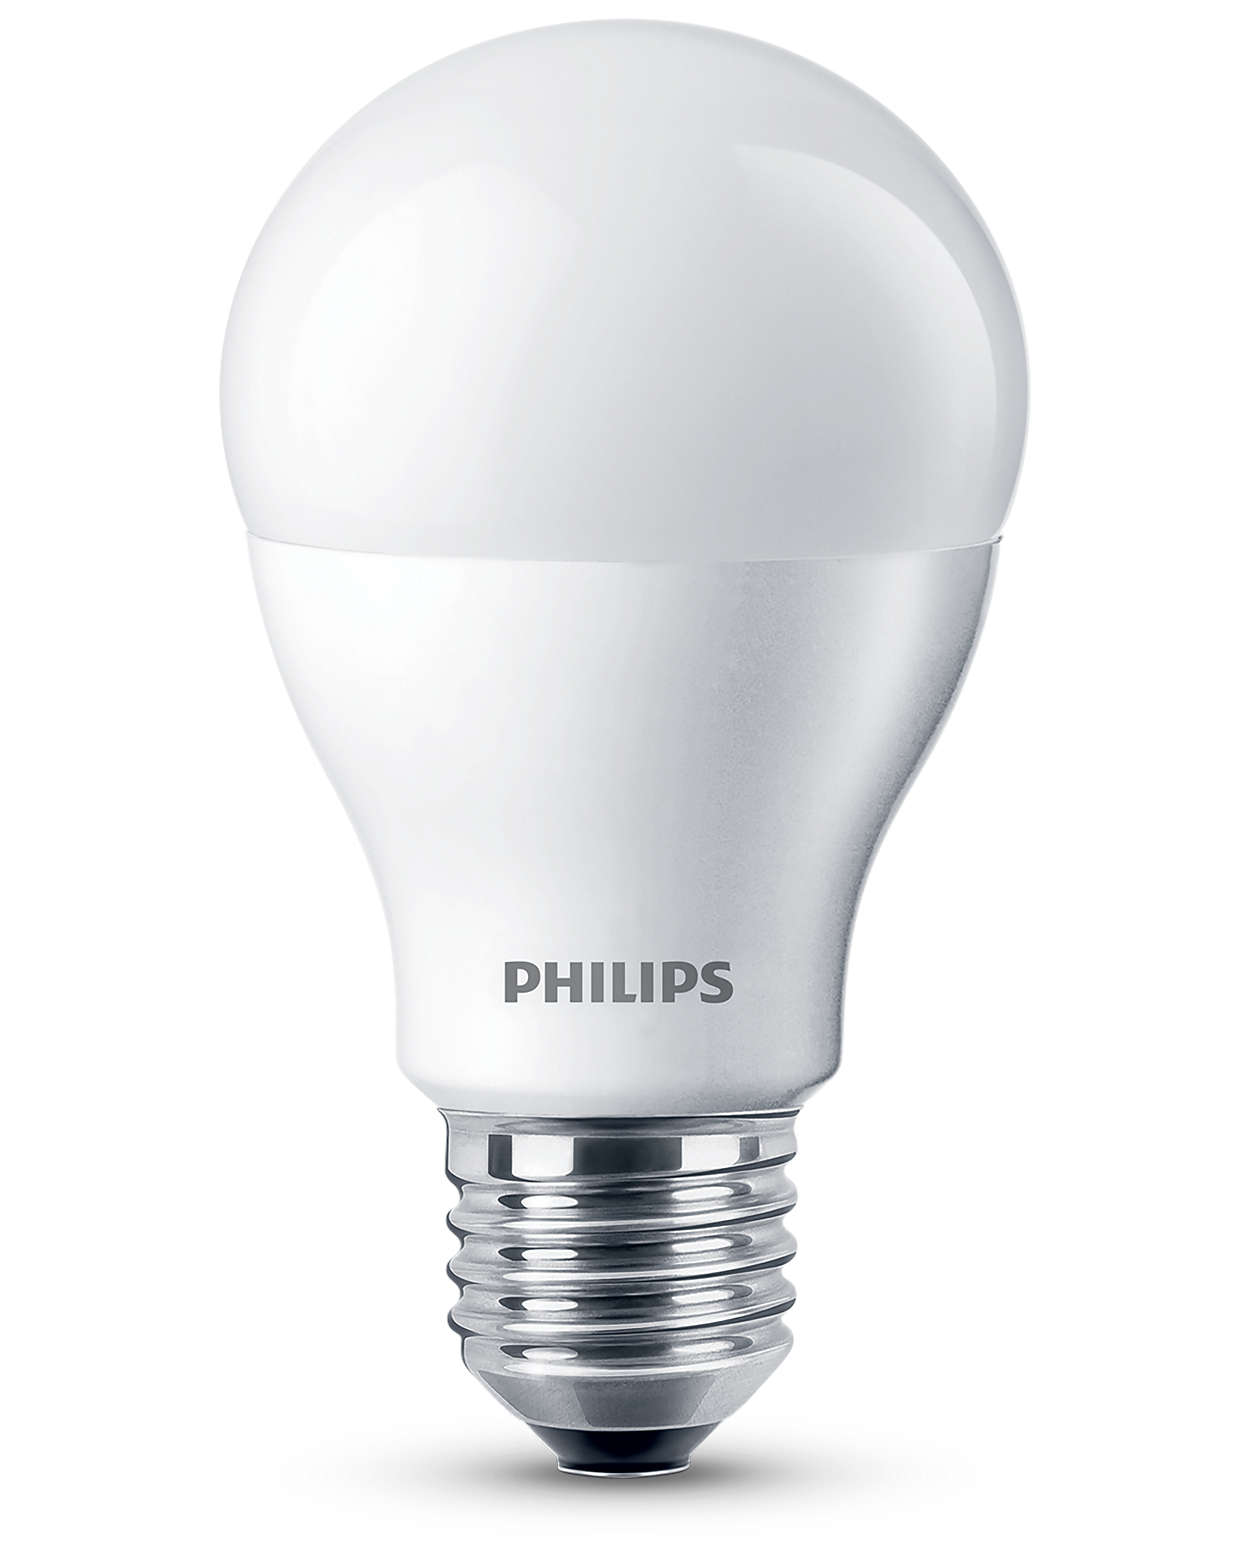 LED Lampe (dimmbar) 8718291744658 | Philips